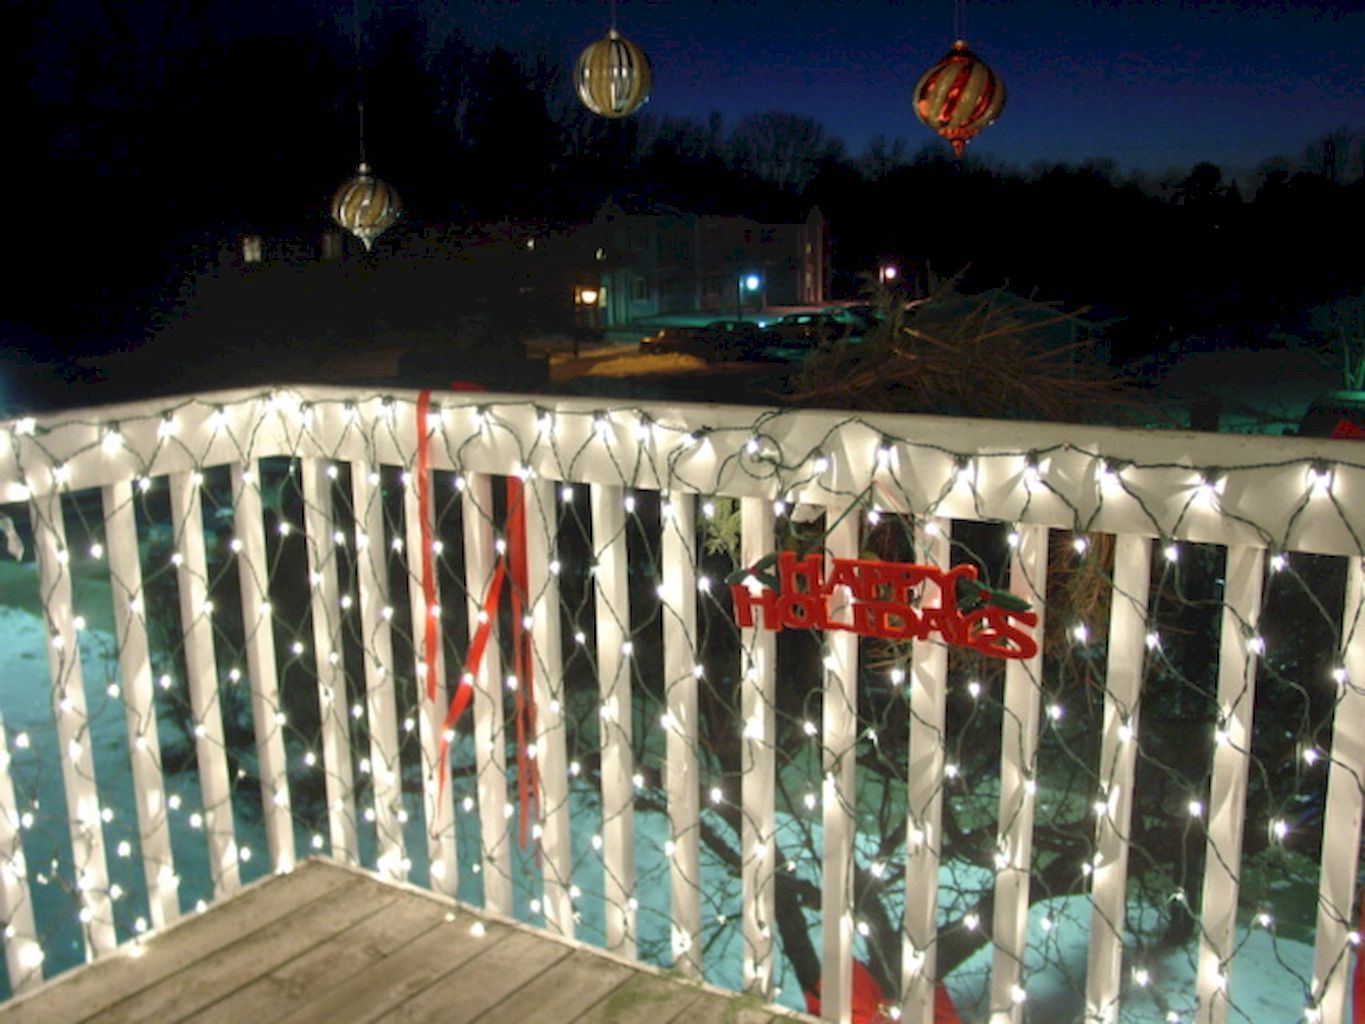 apartment balcony christmas decorating ideas 80 cozy apartment balcony decorating ideas - insidecorate.com QOBBUBT